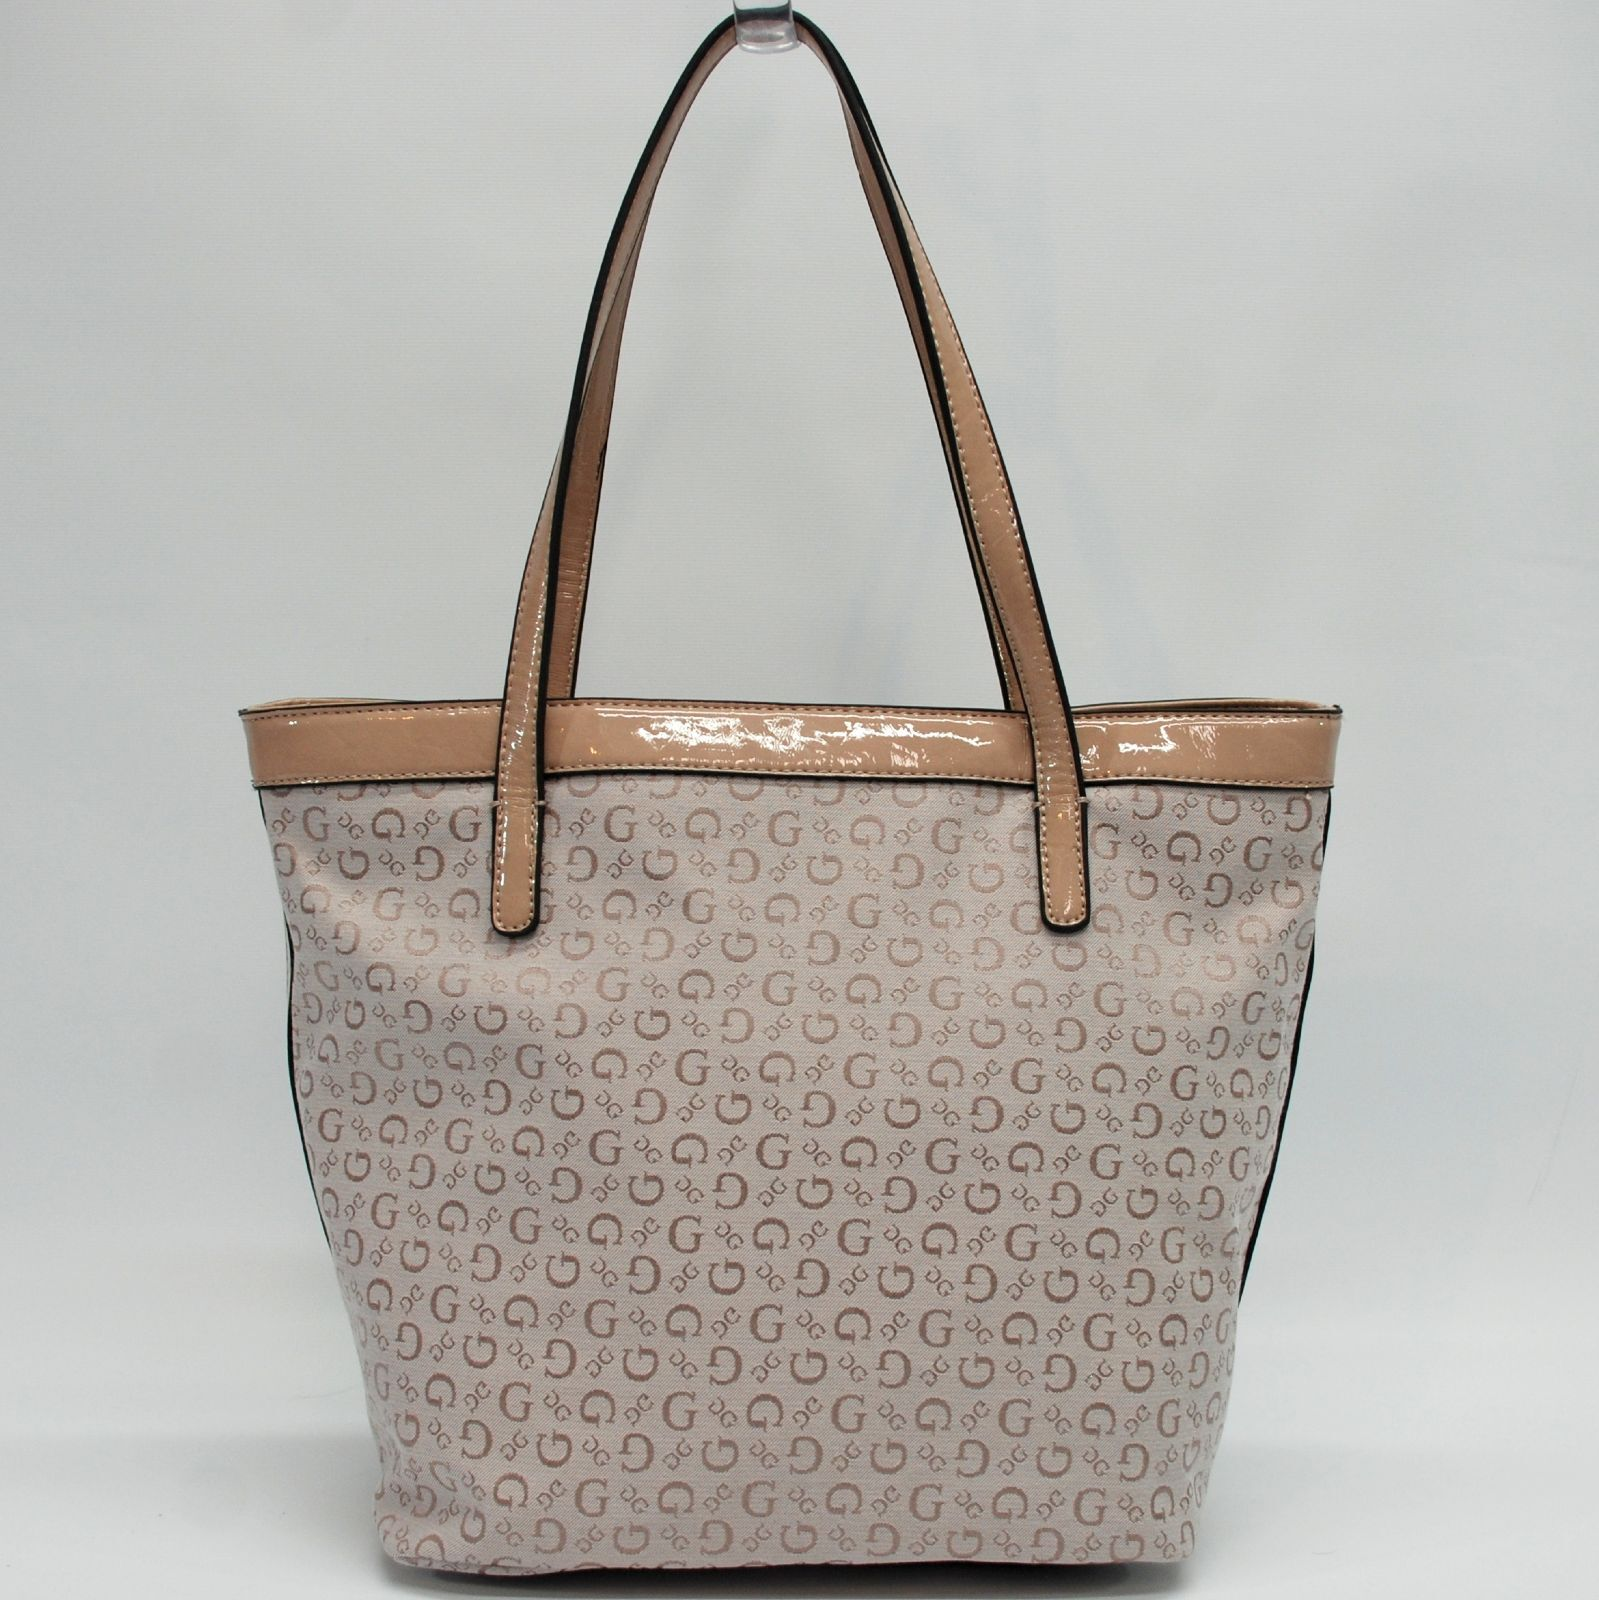 GUESS Authentic Tansy Nude Signature Tote Bag Handbag Purse for sale online   9d1efd13d9a51